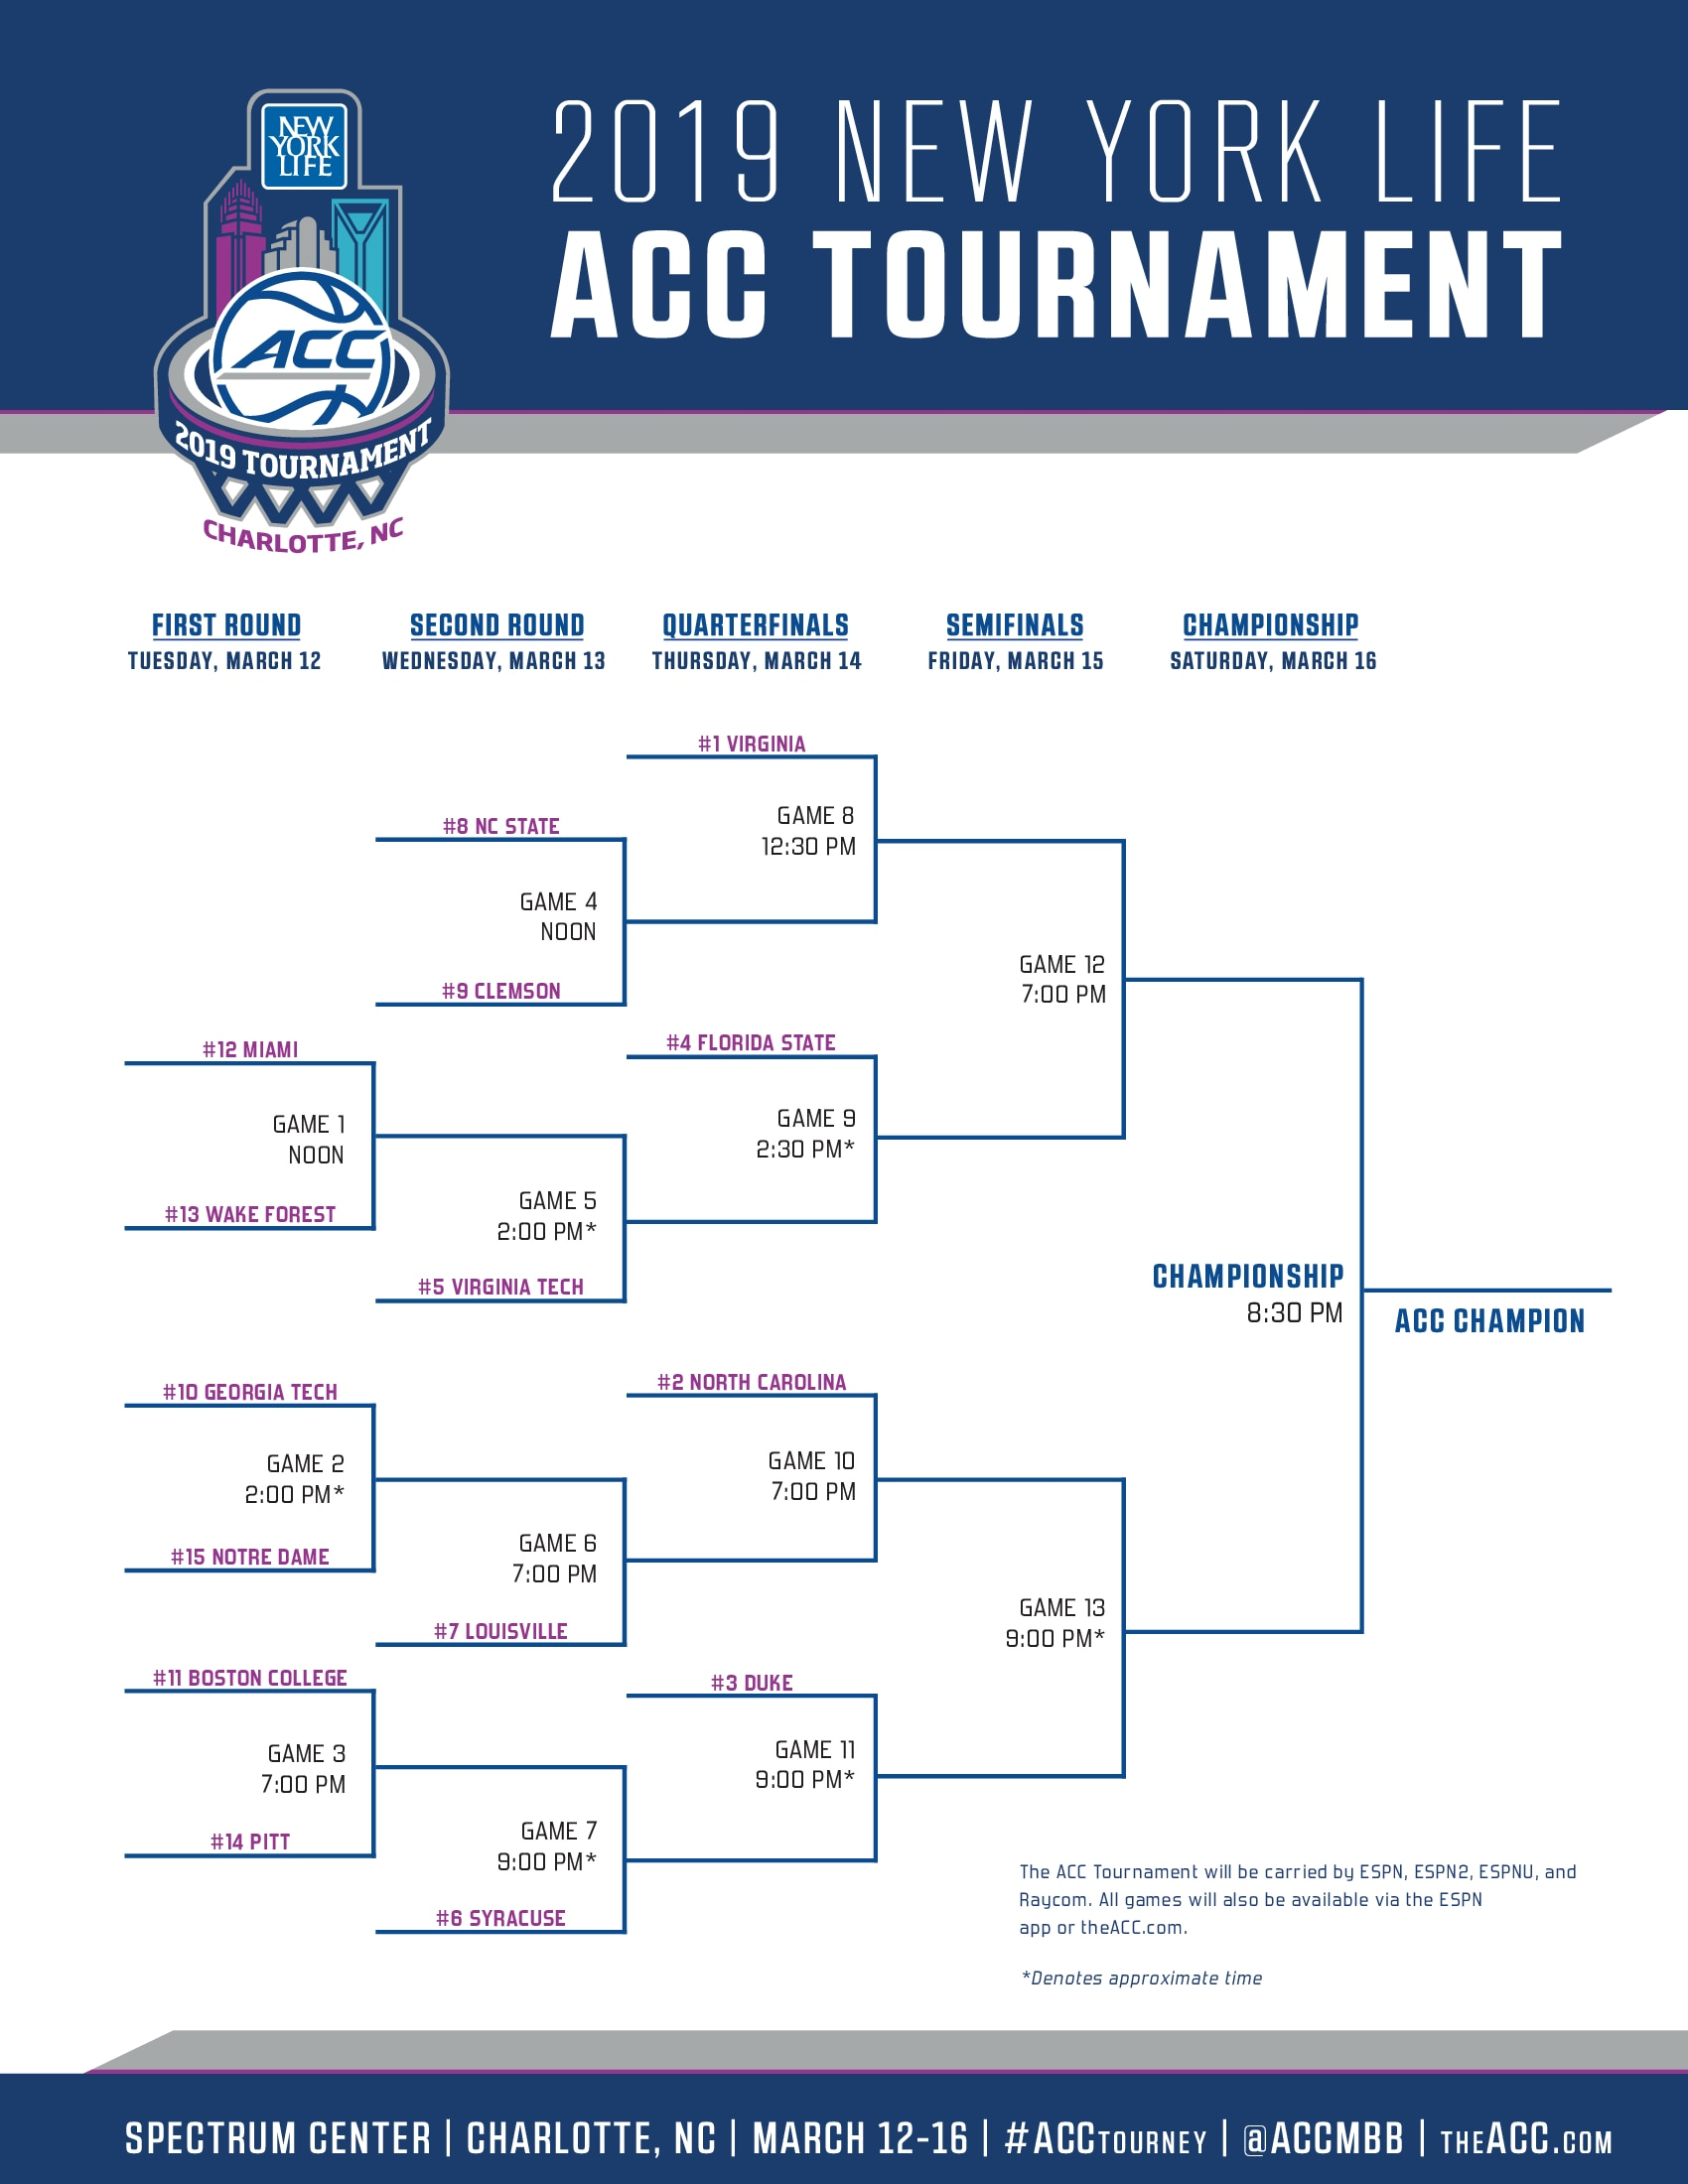 The 2019 ACC Tournament bracket has Virginia the No. 1 seed